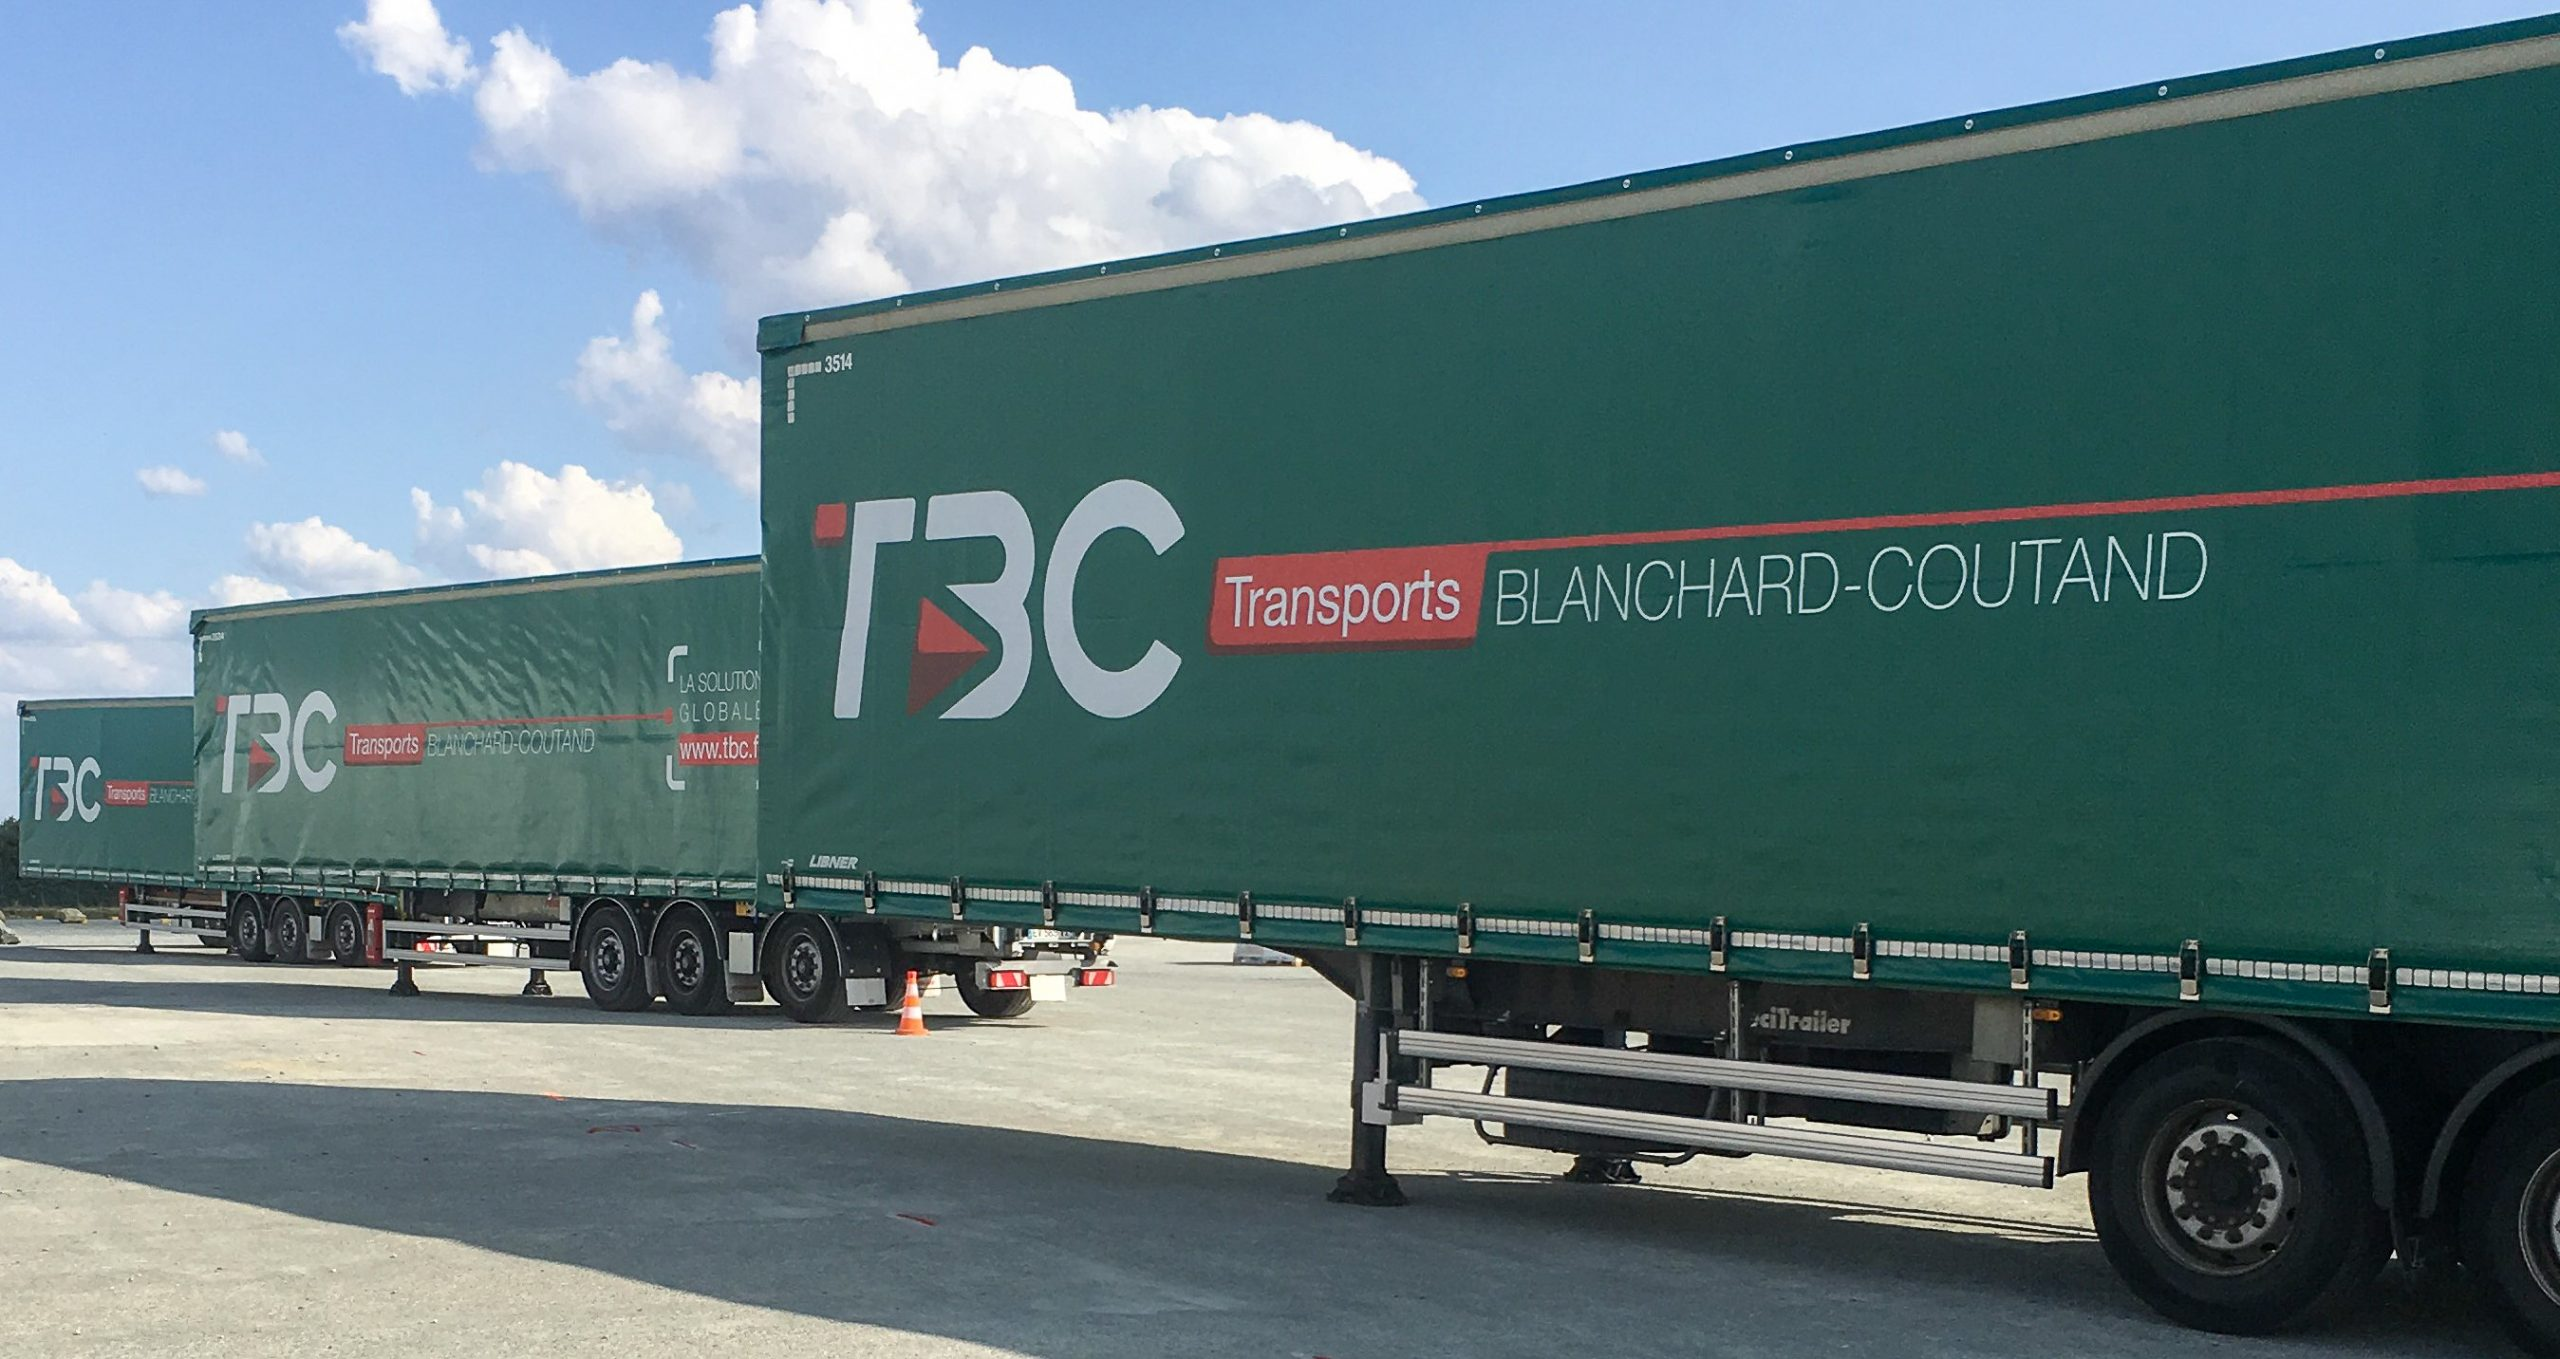 Transports Blanchard Coutand Chooses Trimble Telematics for Traceability